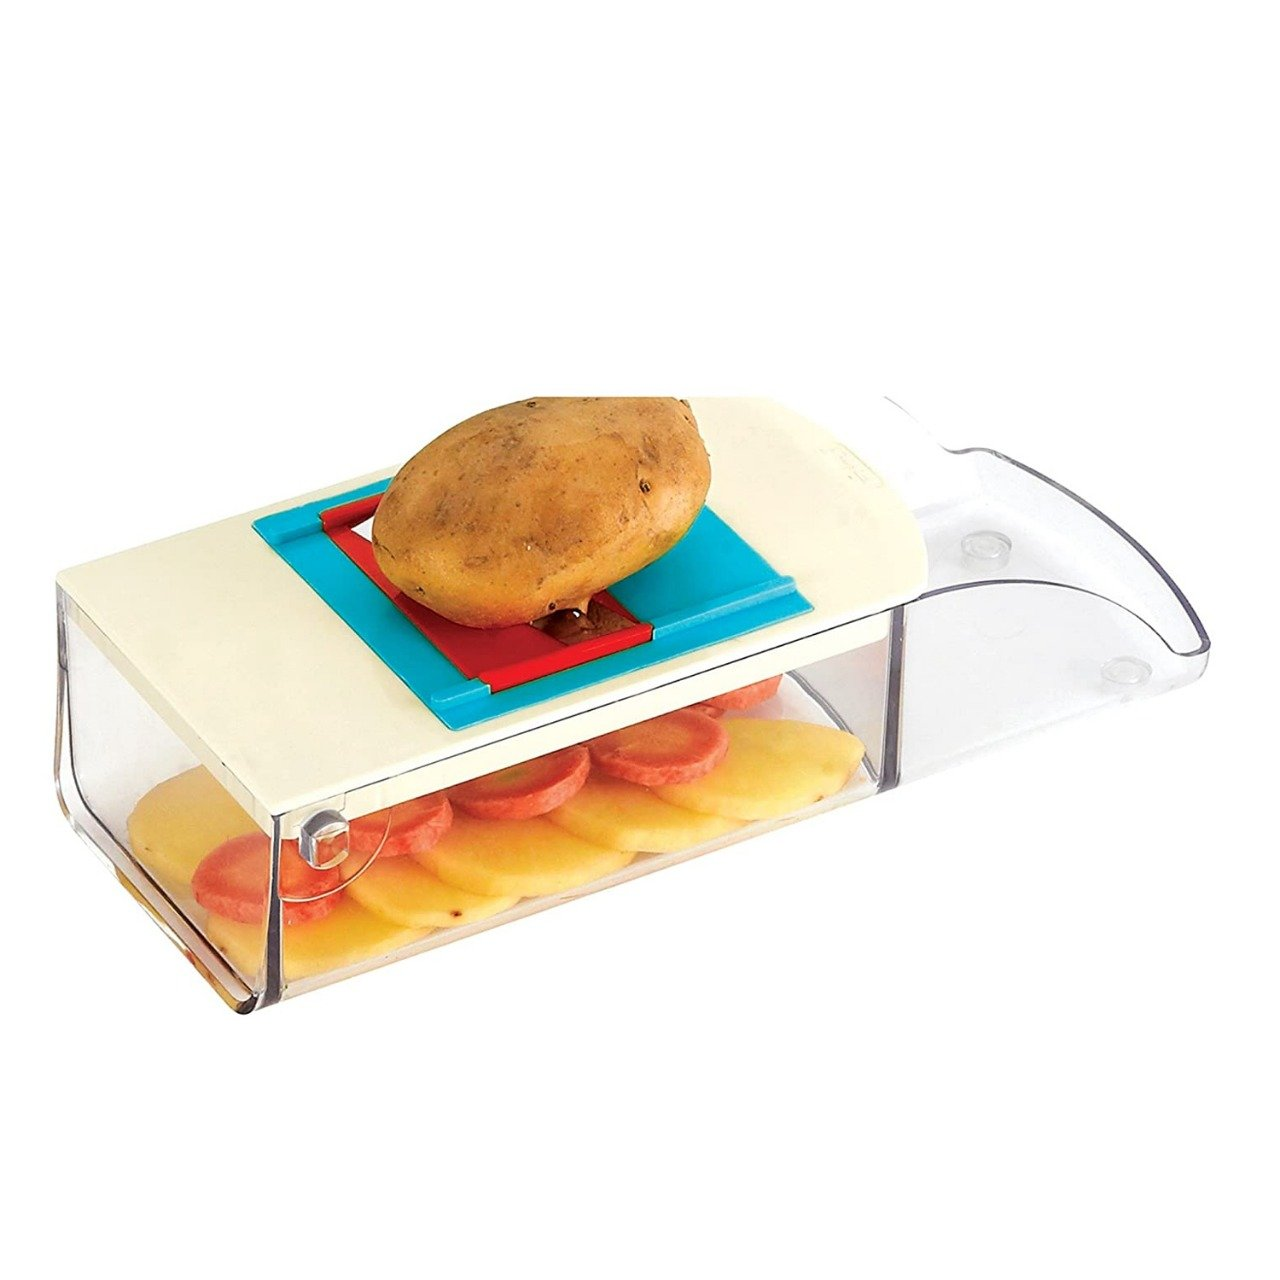 173 Kitchen Multipurpose Slice&Dice and Potato Slicer